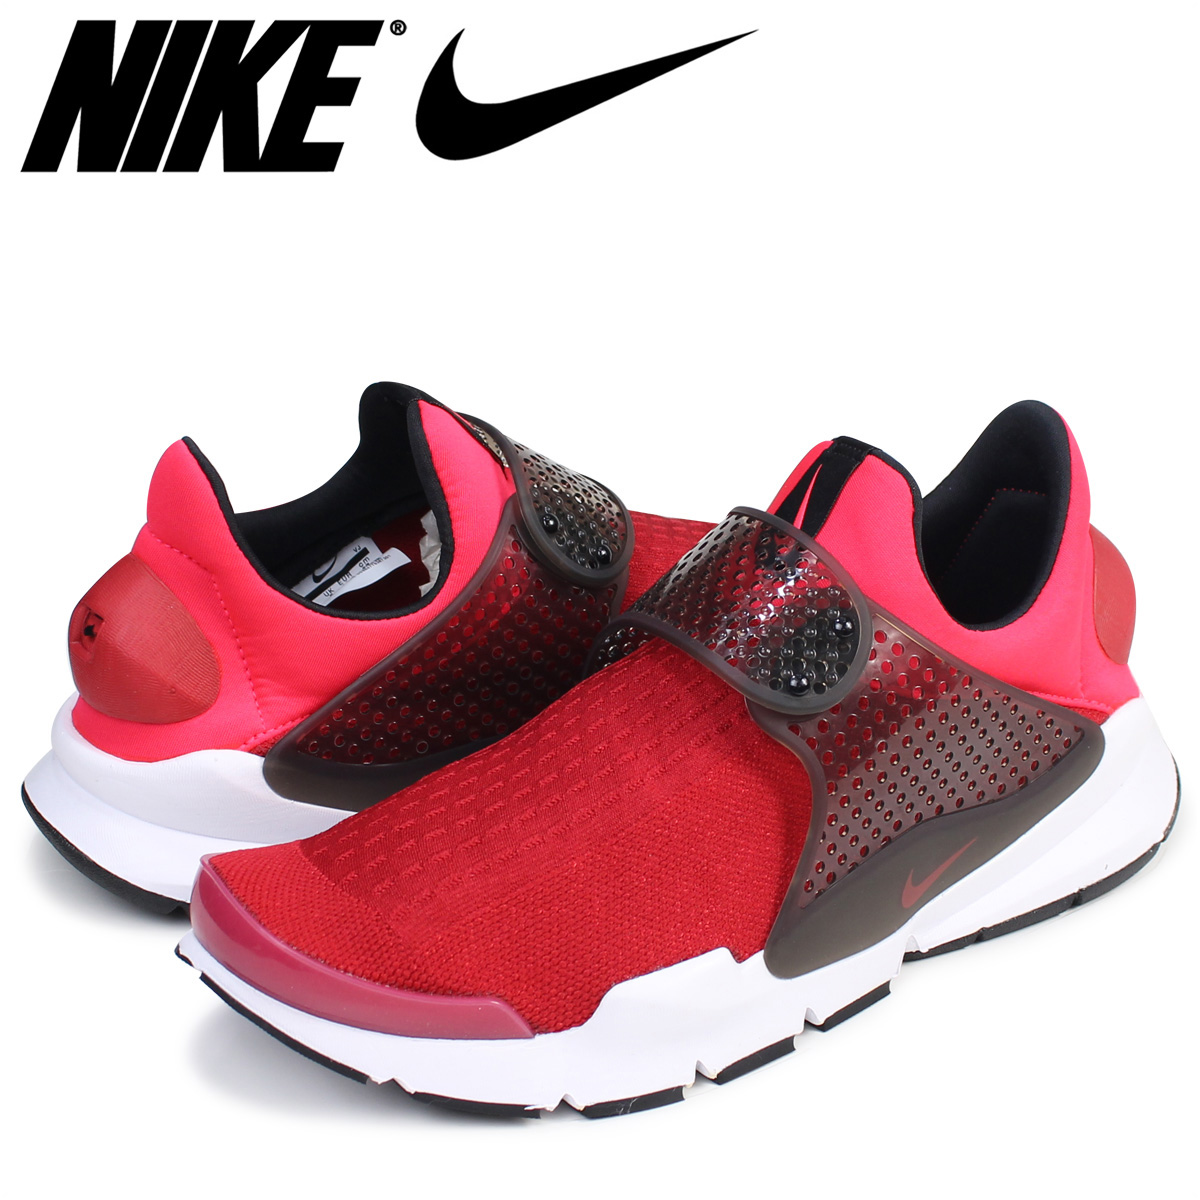 nike shoes redスニーカー